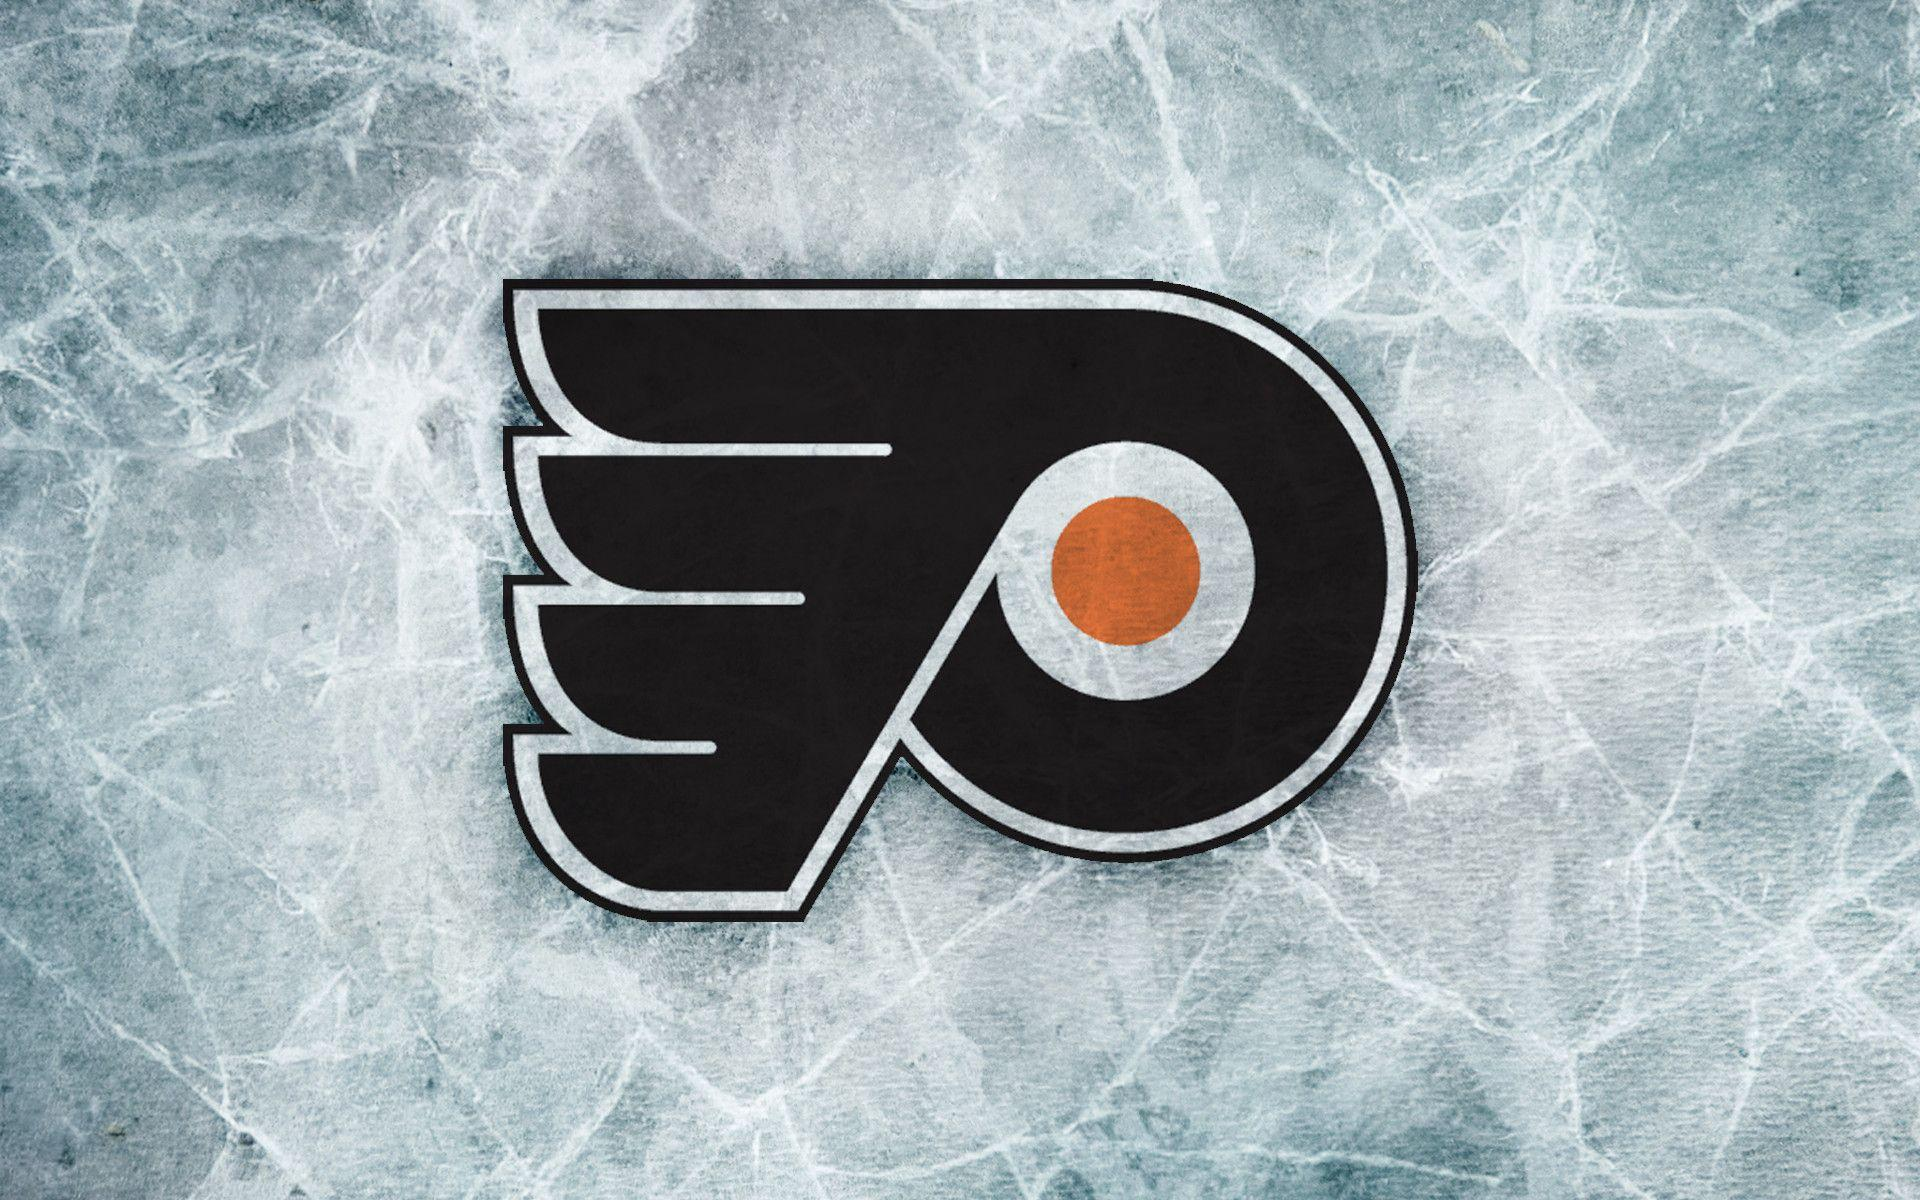 philadelphia flyers wallpapers – 1920×1200 High Definition